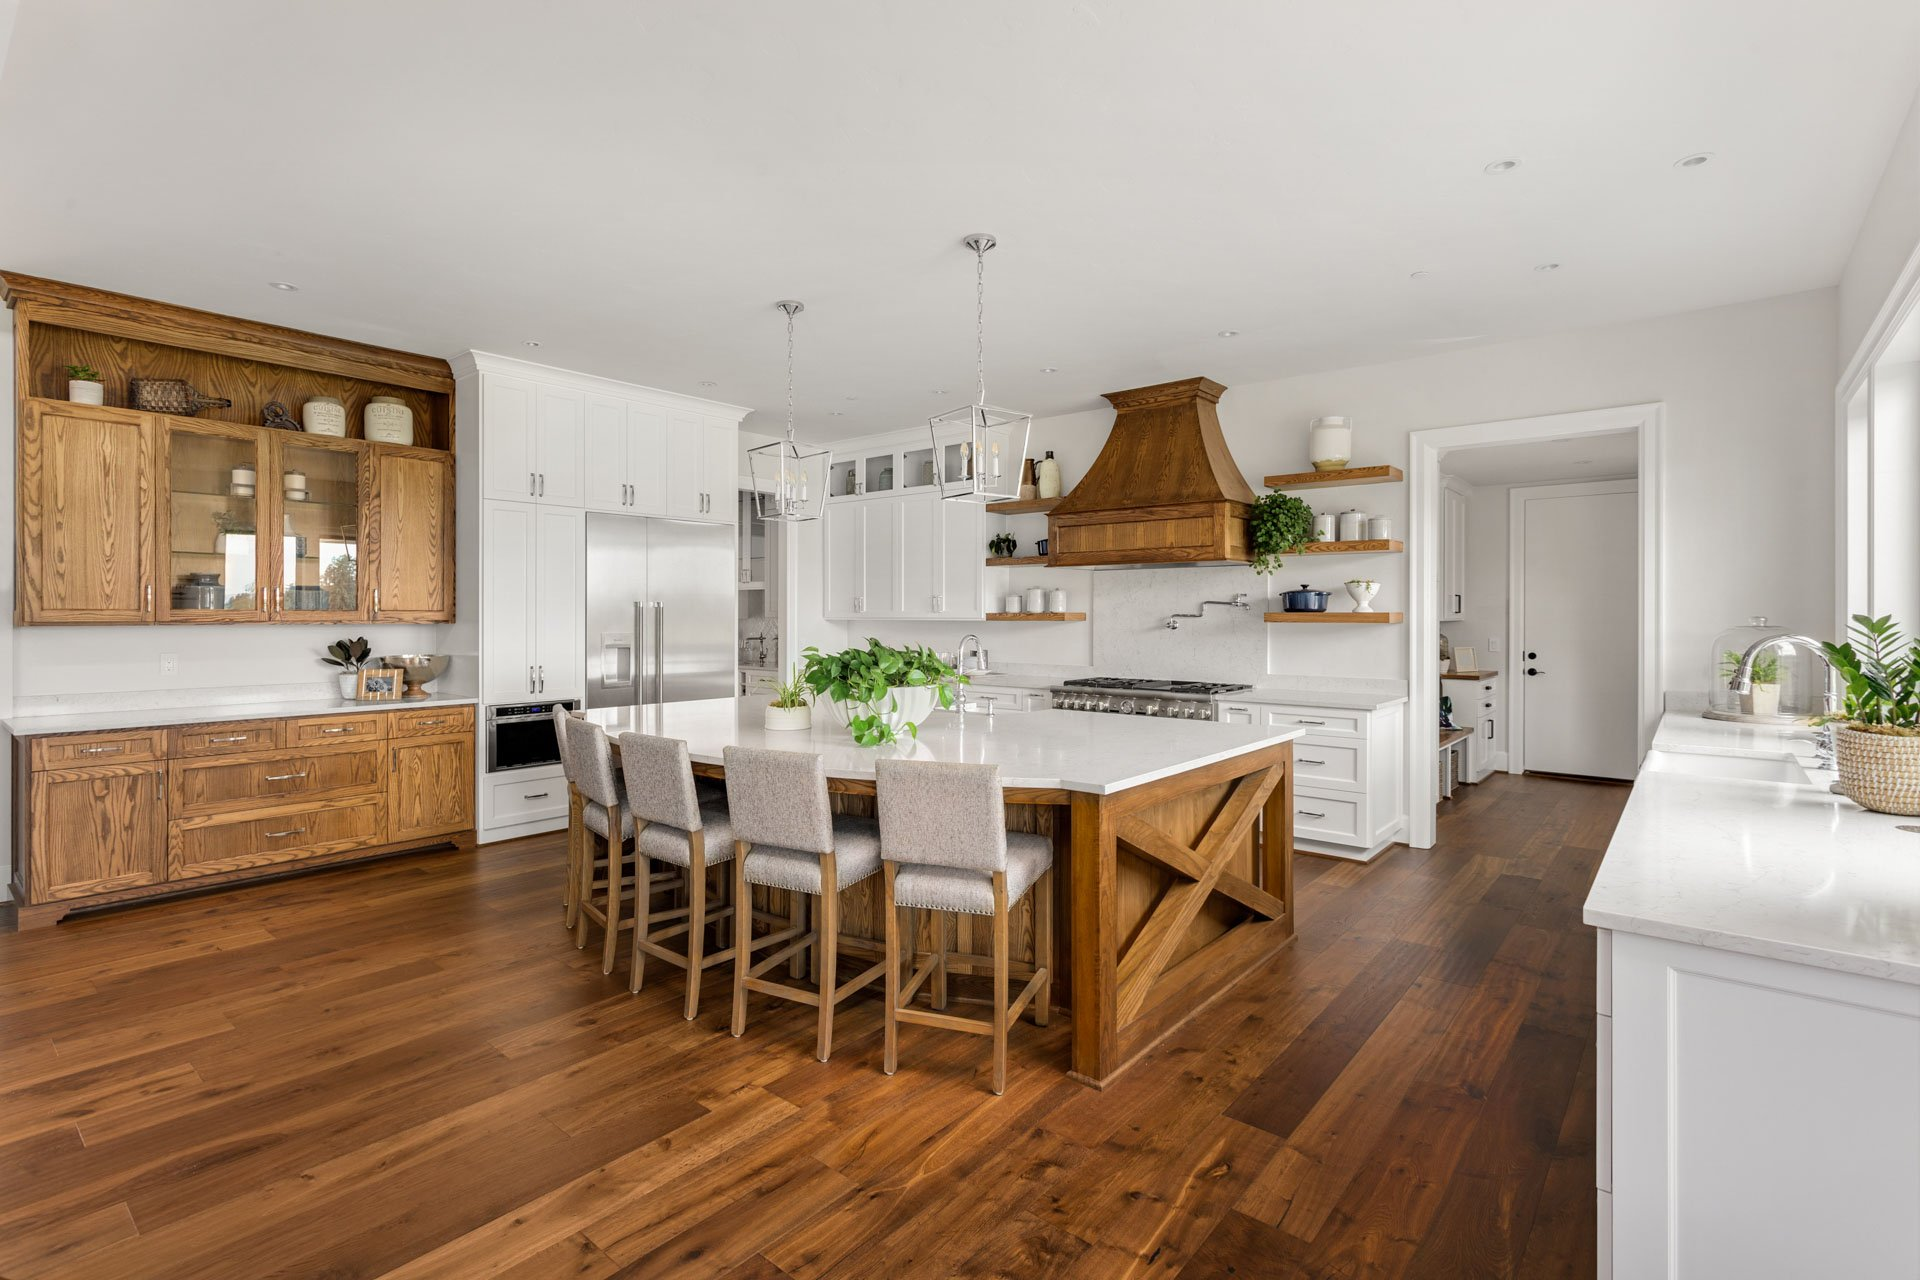 durango hardwood flooring company in Griffith, Carbon Junction